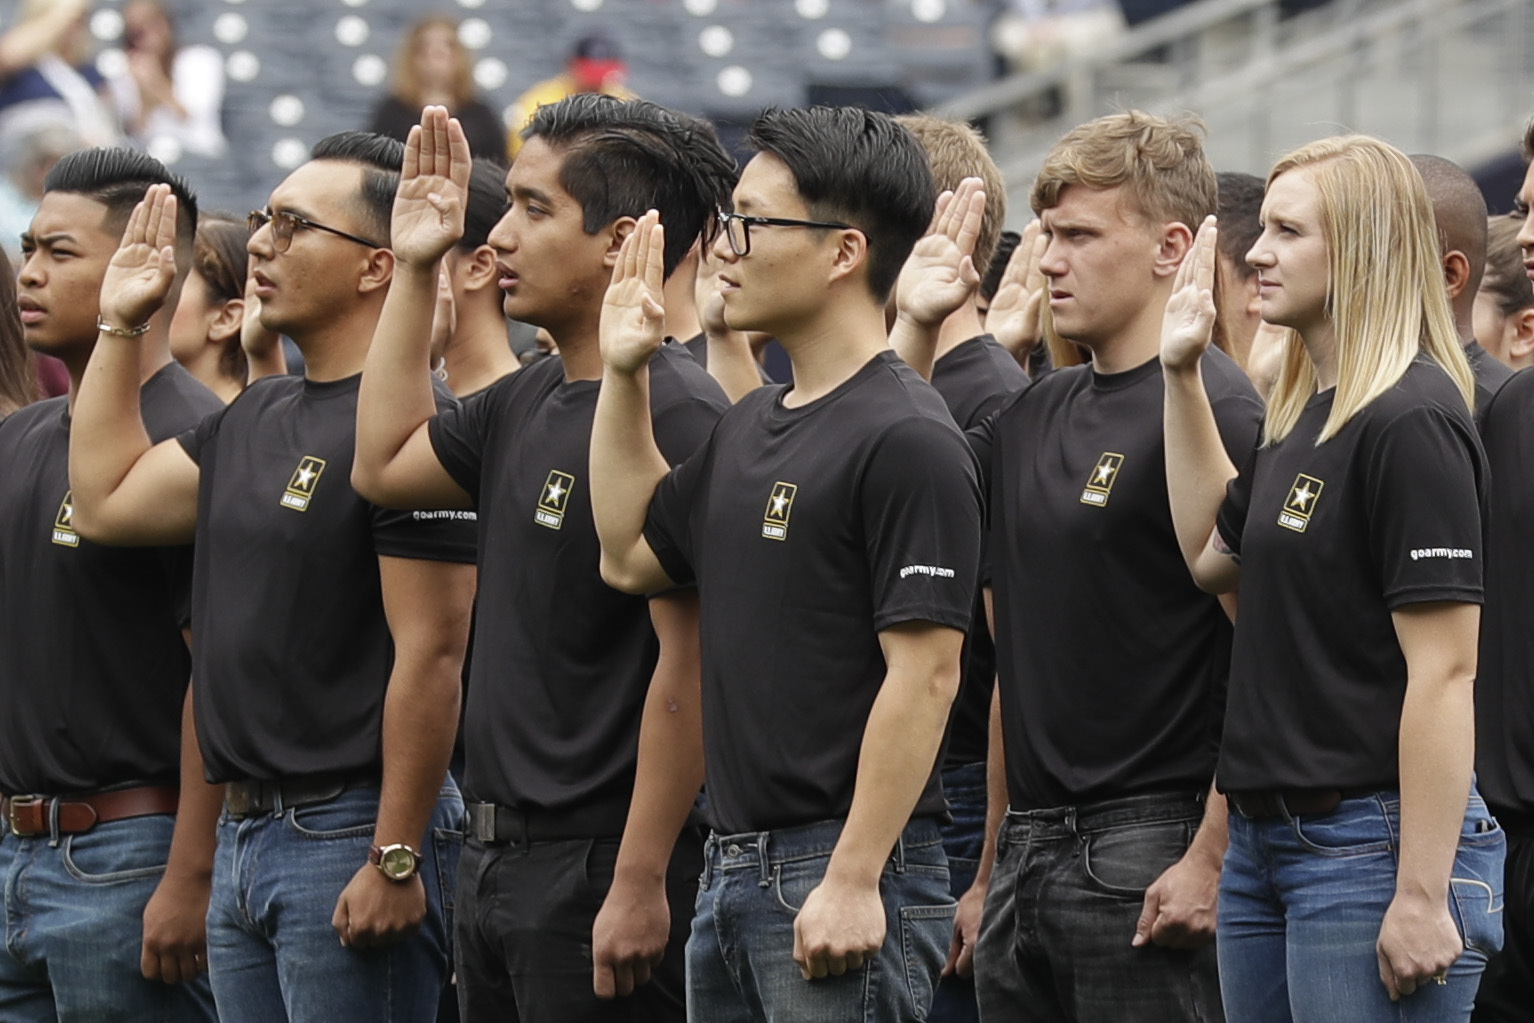 Military recruiting woes spur debate over enlistment age